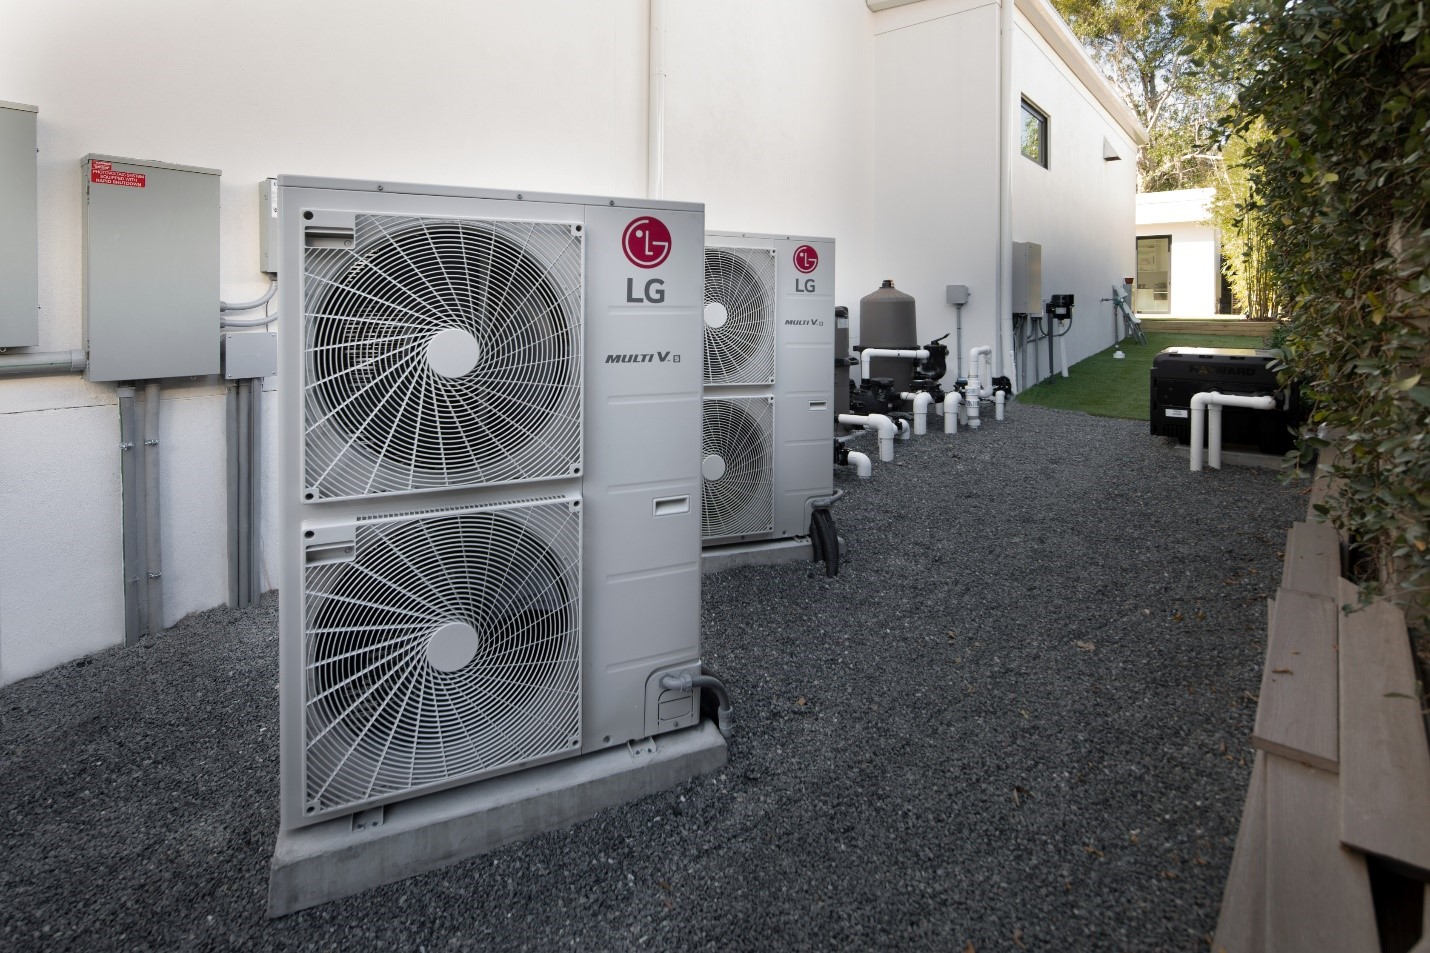 LG's HVAC system which provides energy-efficient air conditioning being used to support the TNAR showroom's Net Zero status.